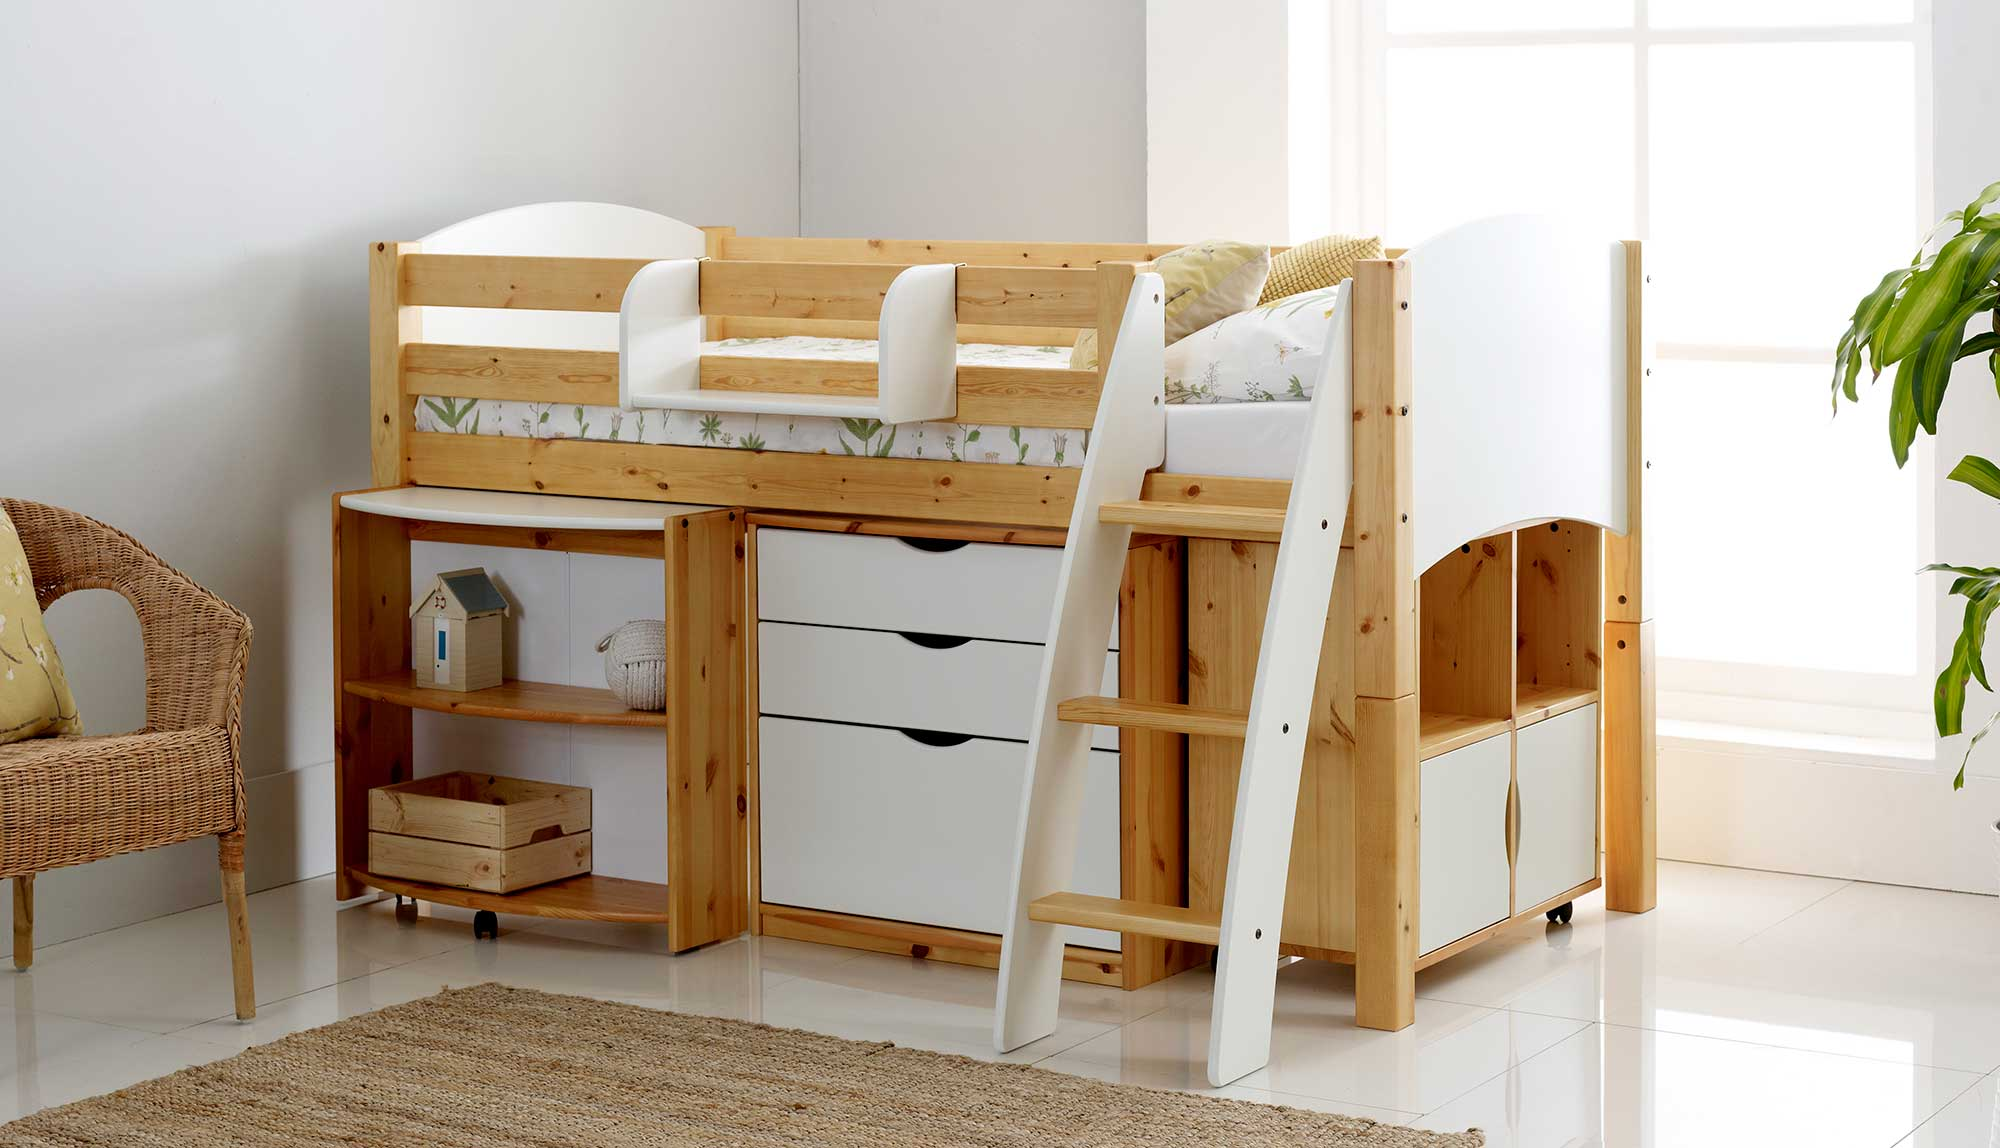 Childrens Kids 3 Tier Toy Bedroom Storage Shelf Unit 8: Honey Cabin Bed With 3 Drawer Chest, Pull Out Desk & Quad